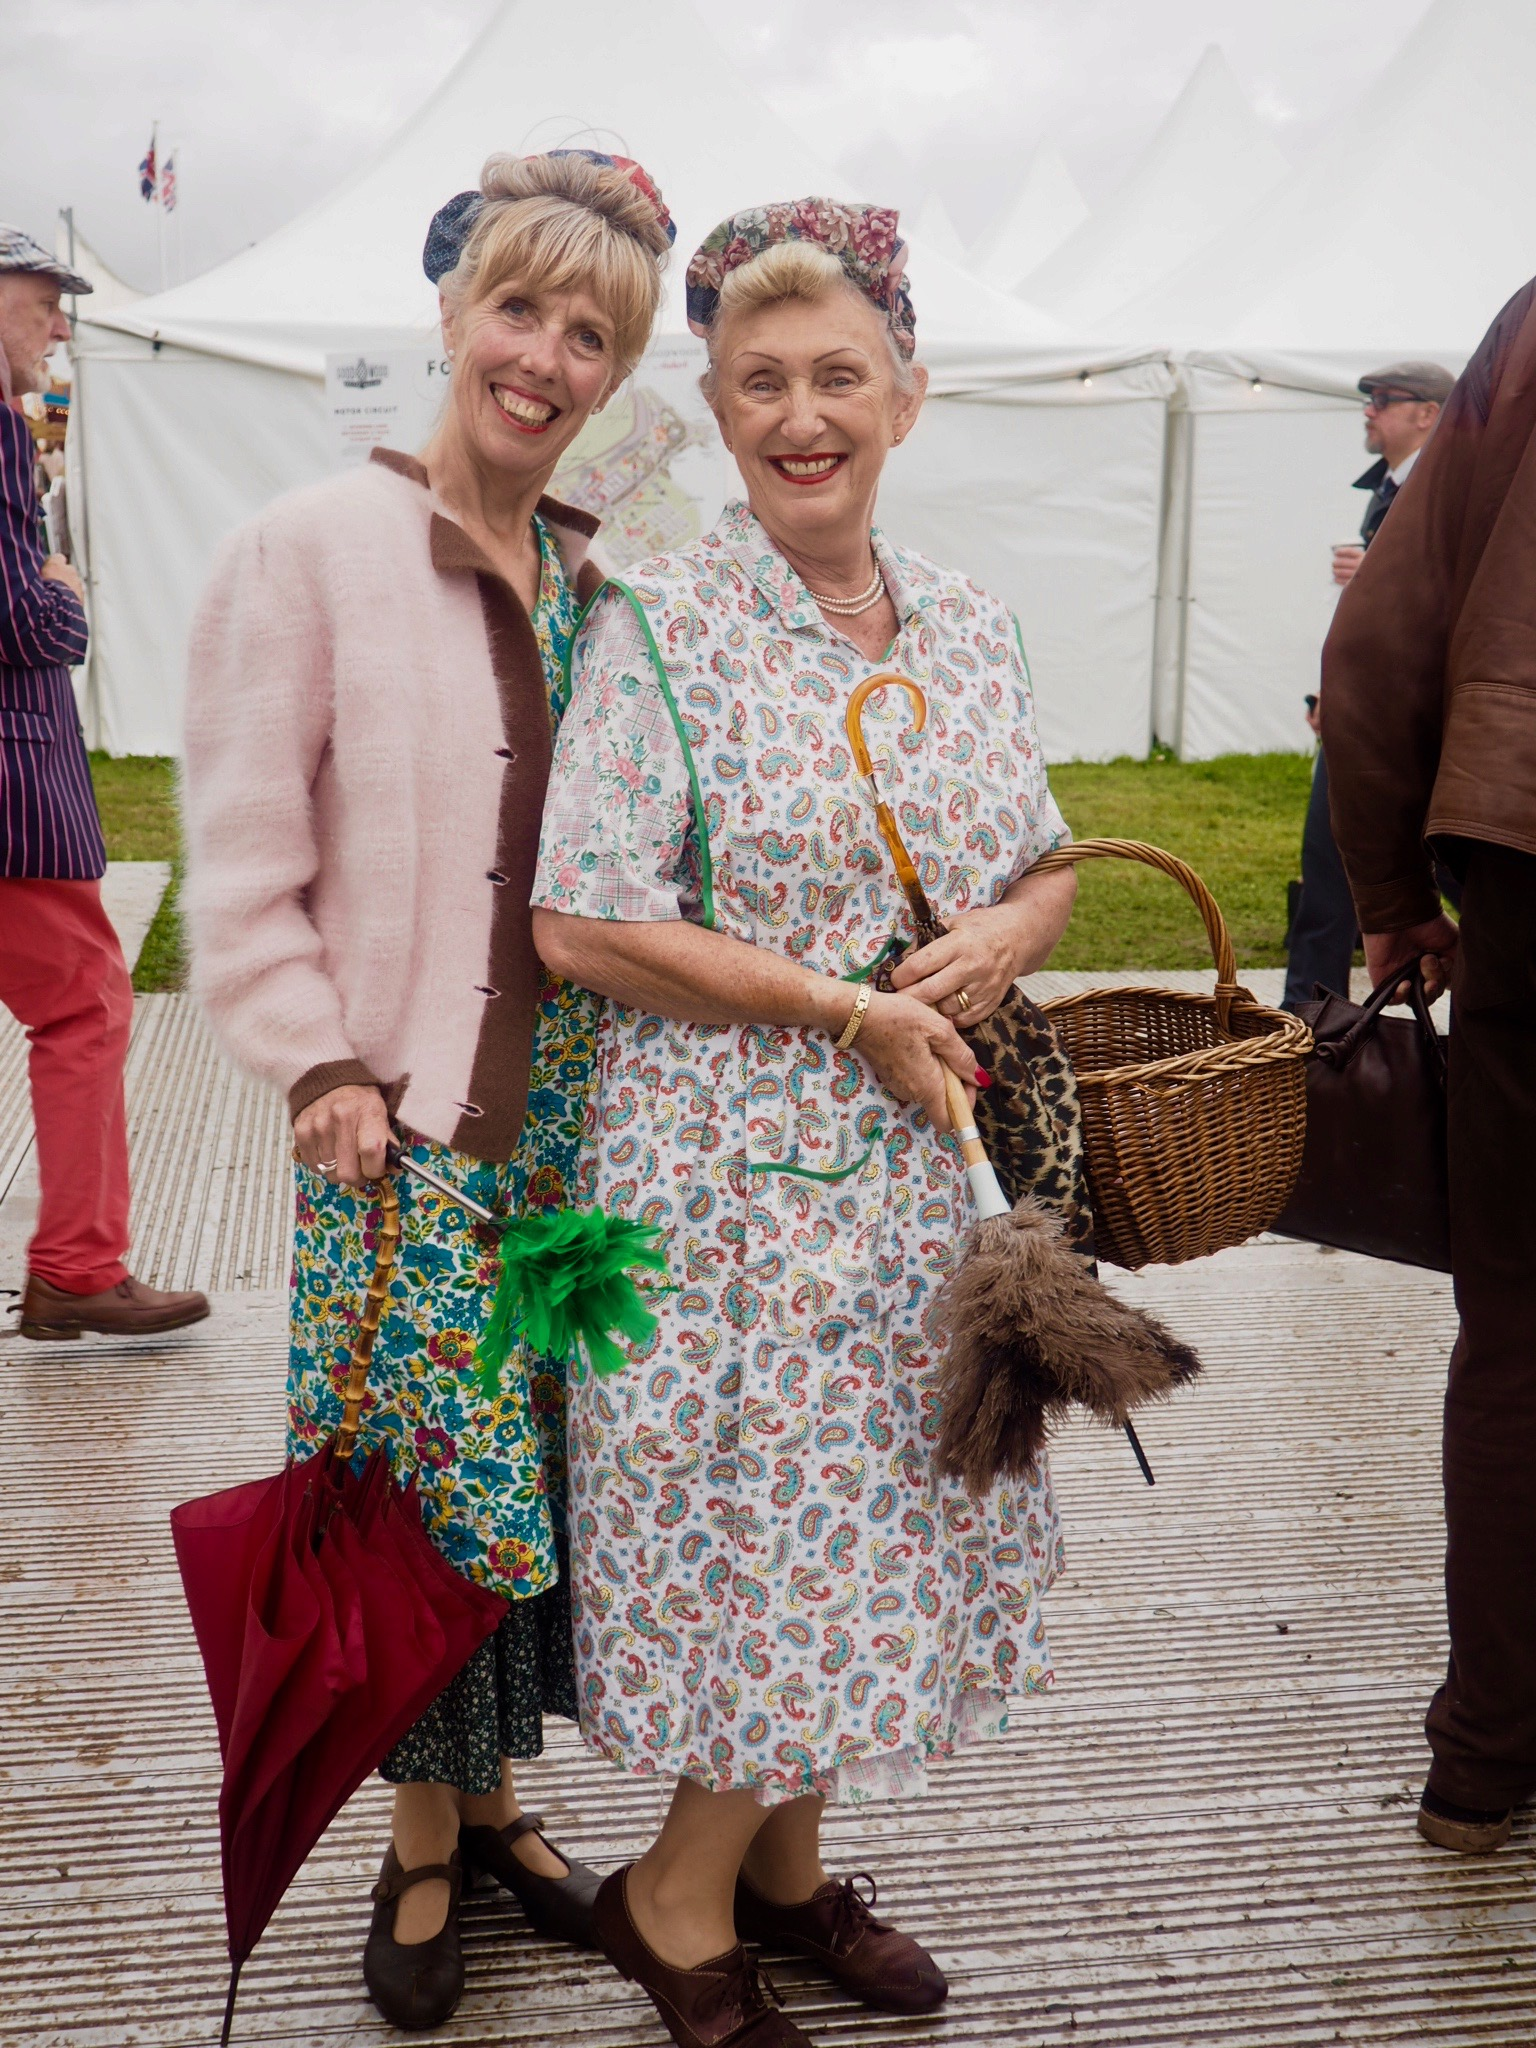 Fabulous ladies at Goodwood Revival